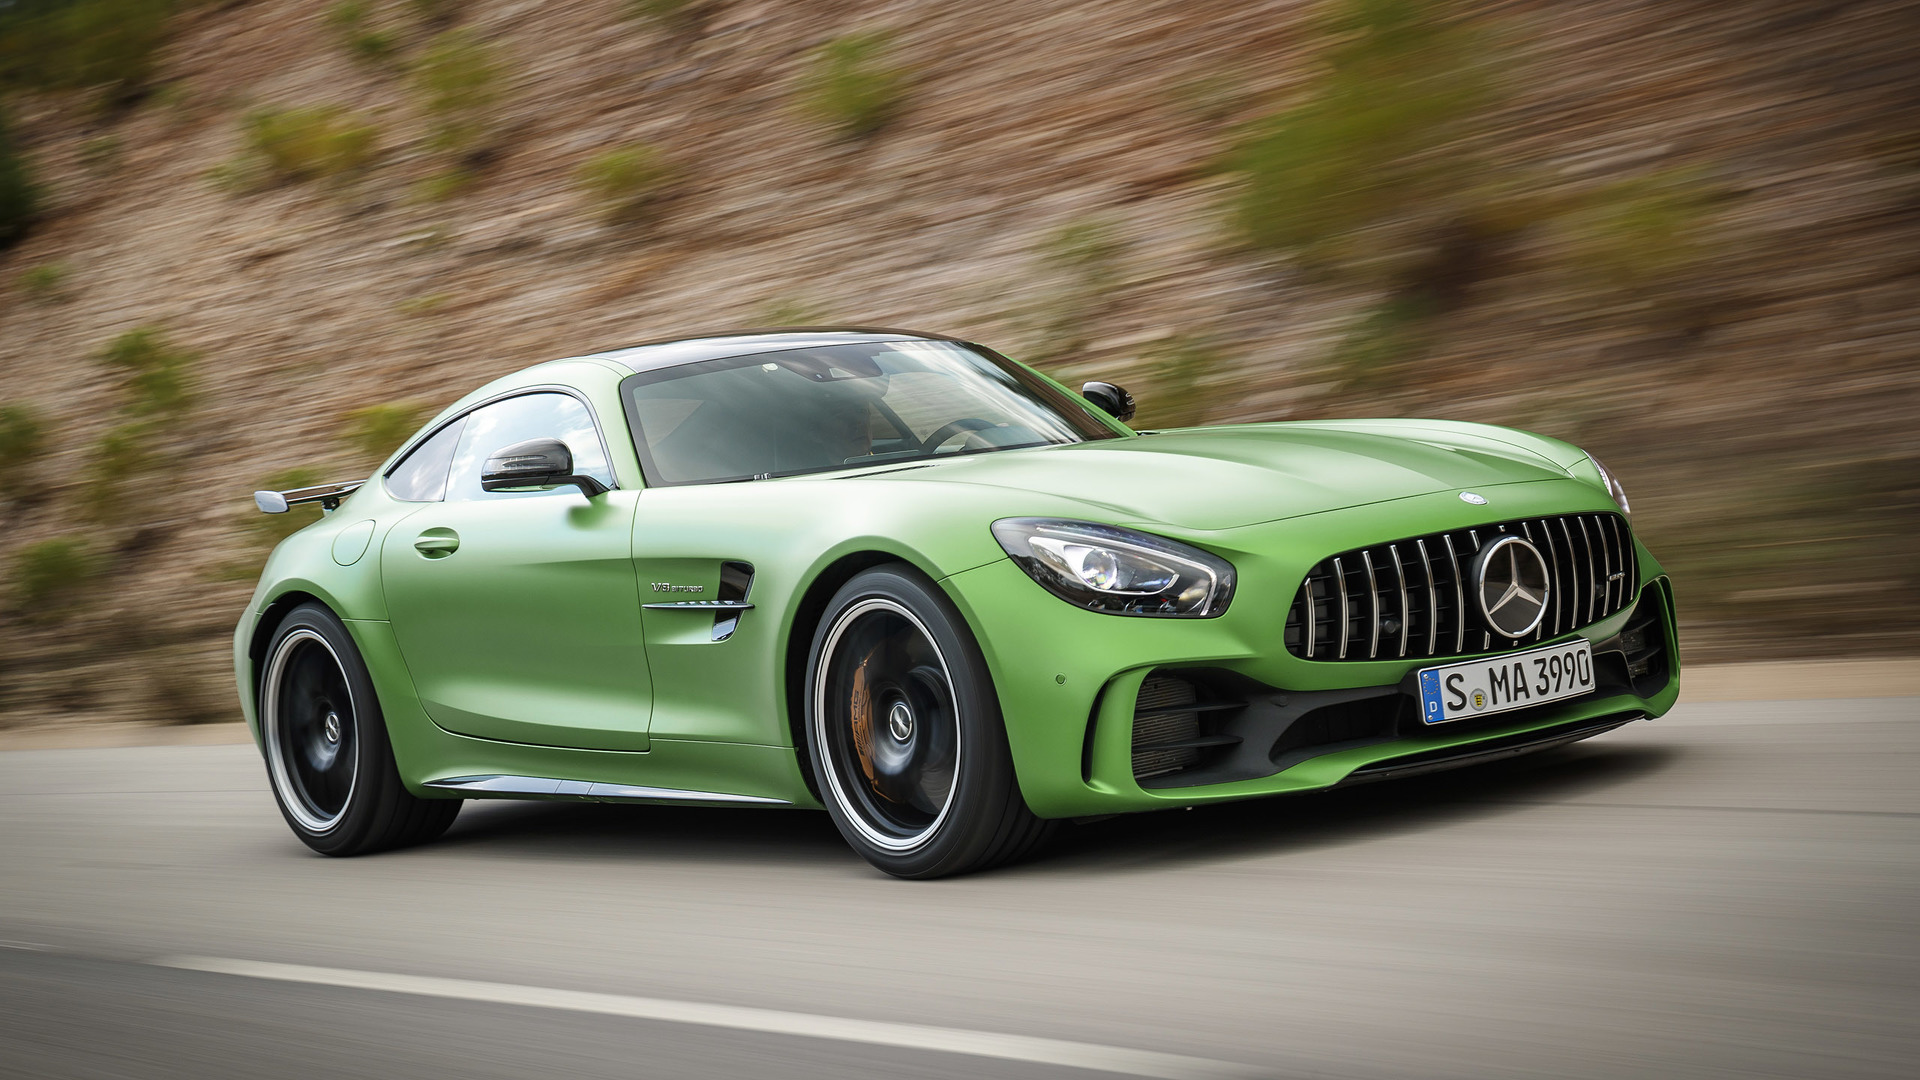 2018 mercedes amg gt r first drive the green monster of for Mercedes benz usa website